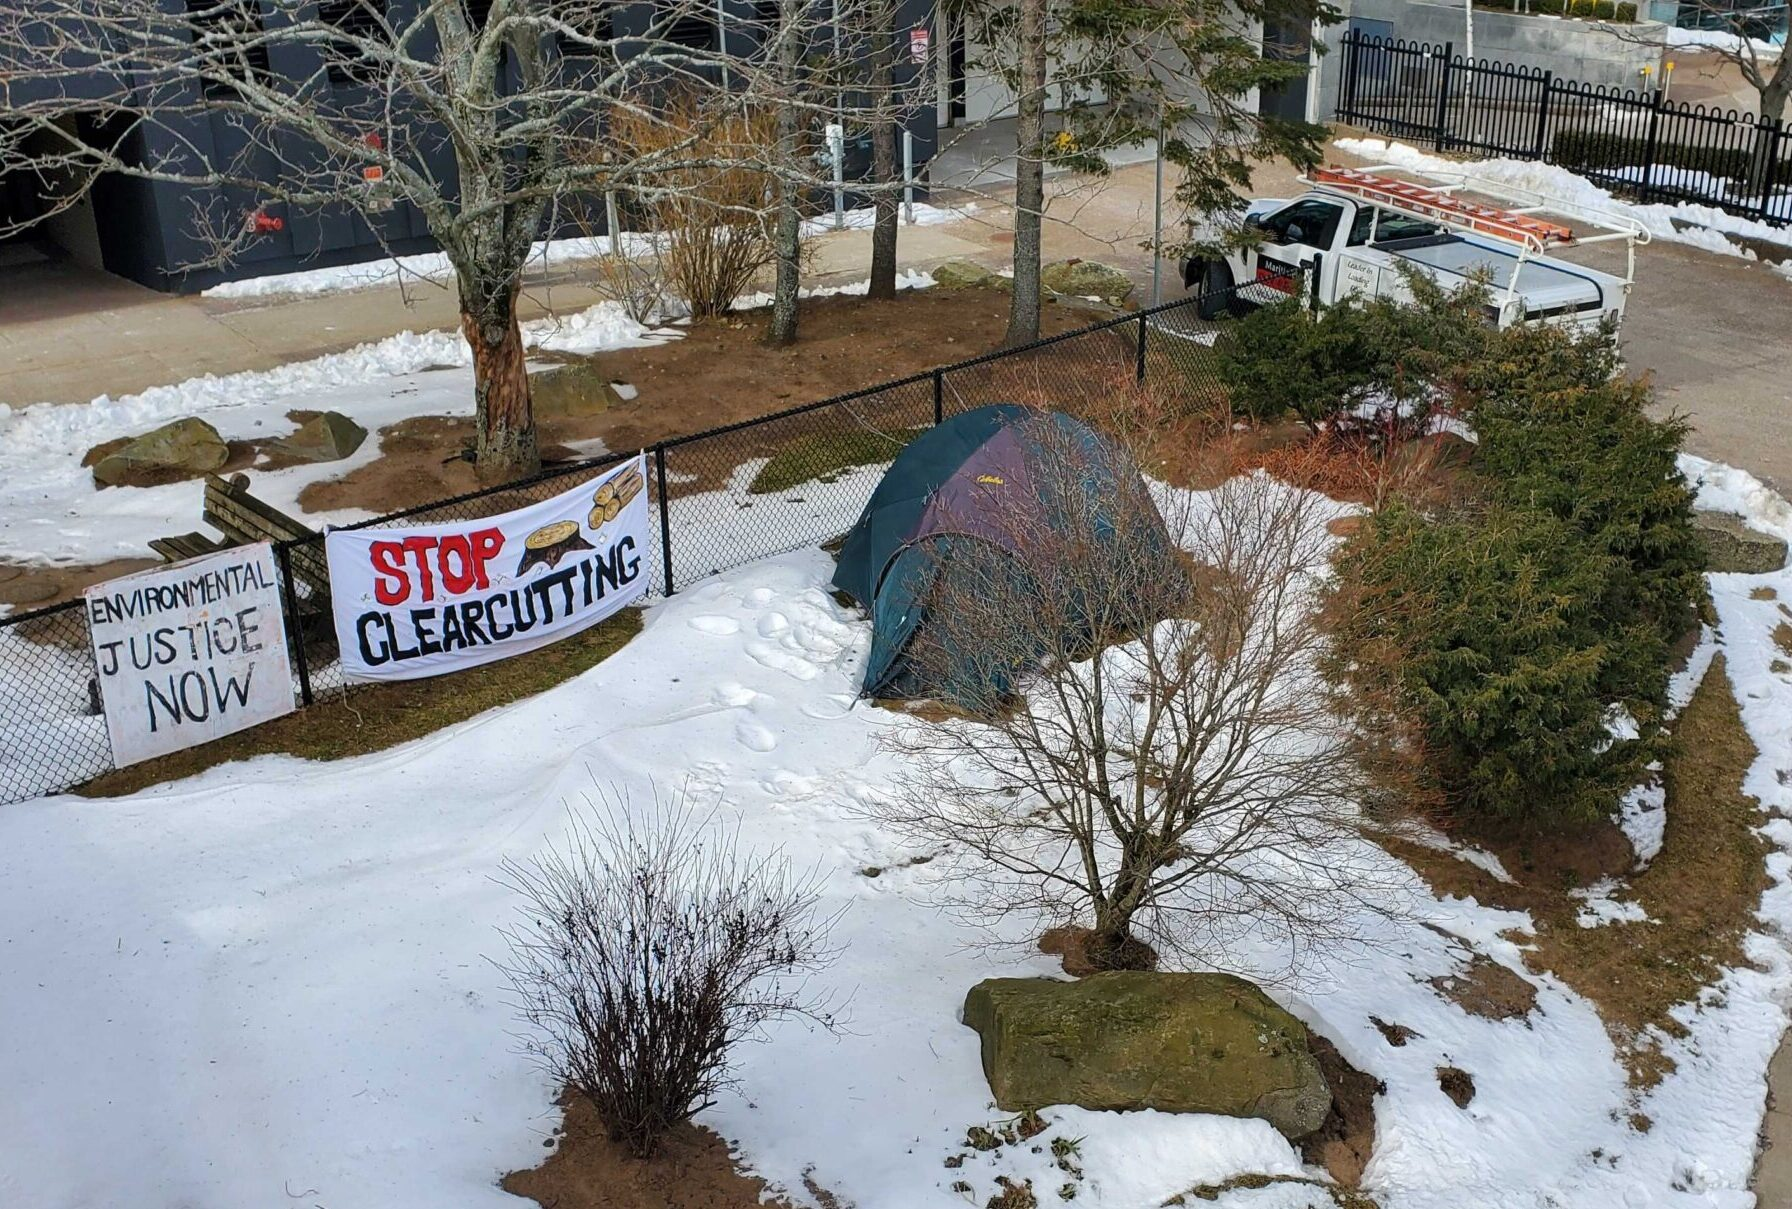 Tent in the snow with signs against clearcutting.